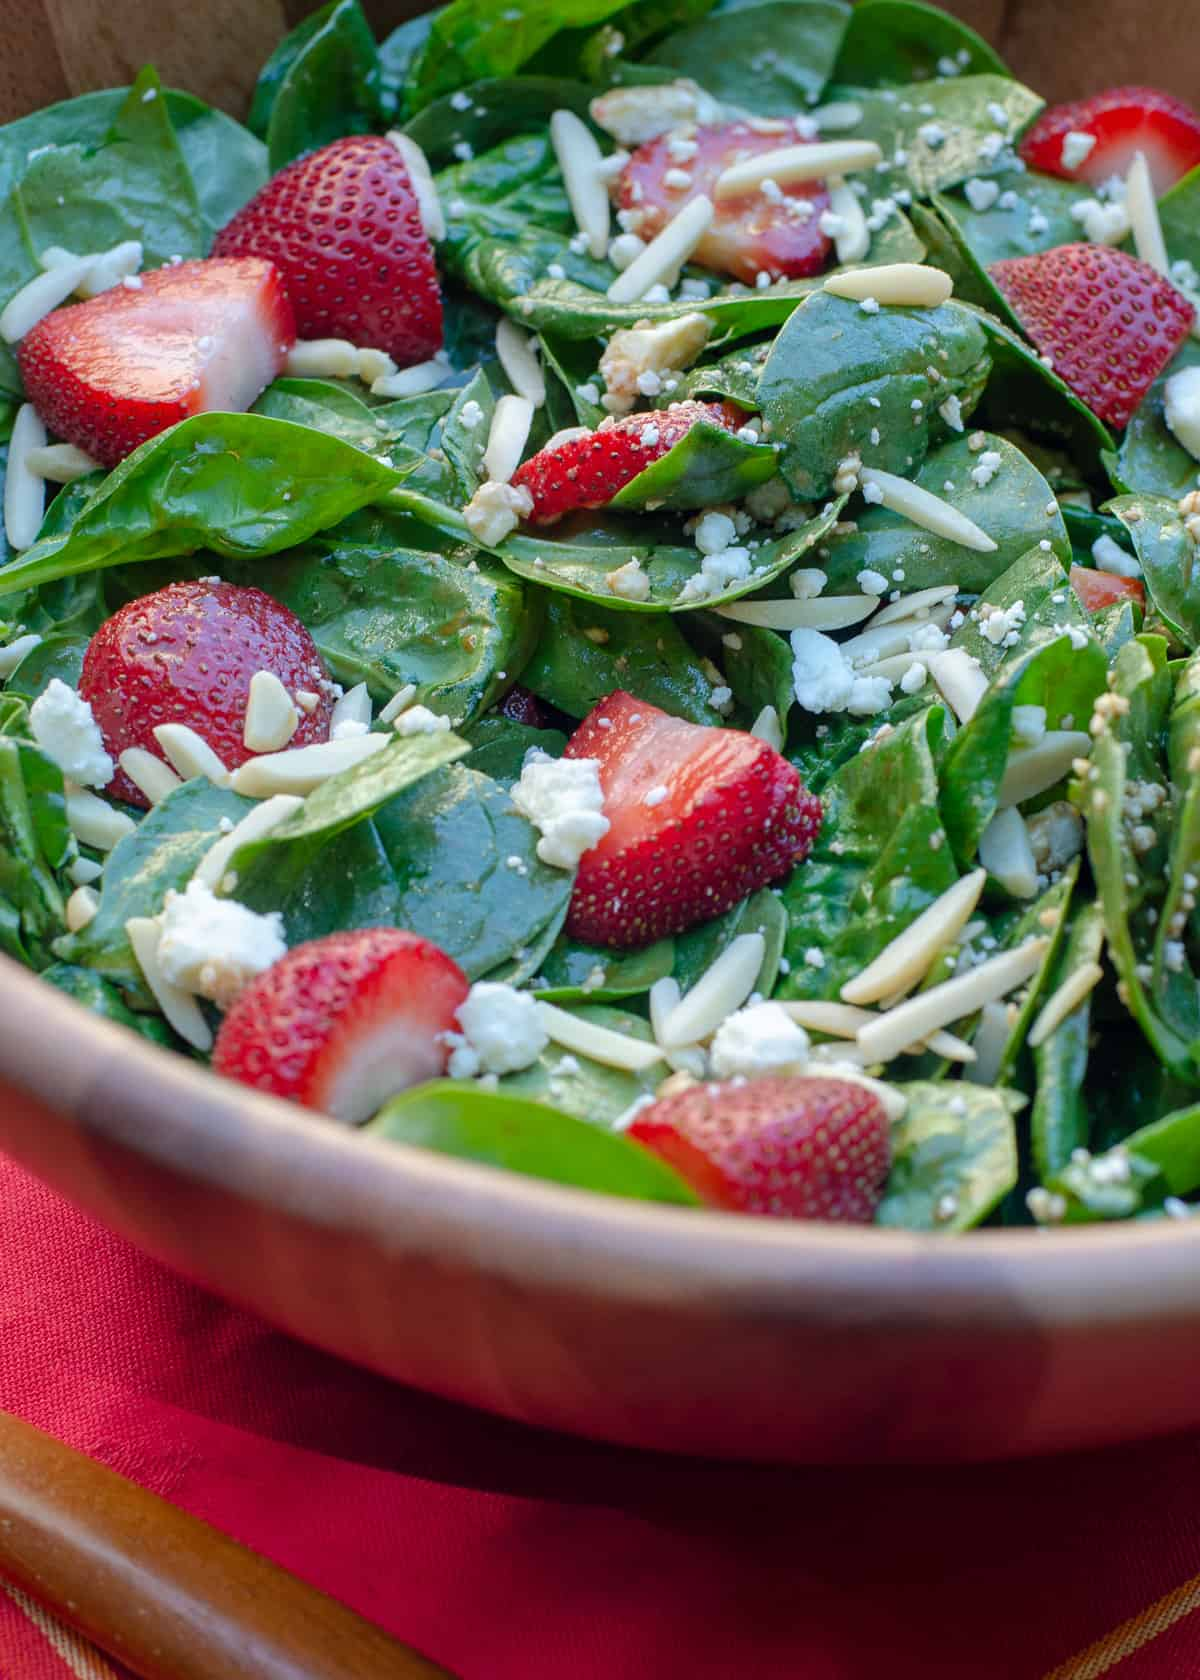 A close up of the Strawberry Spinach Salad in a wooden salad bowl.